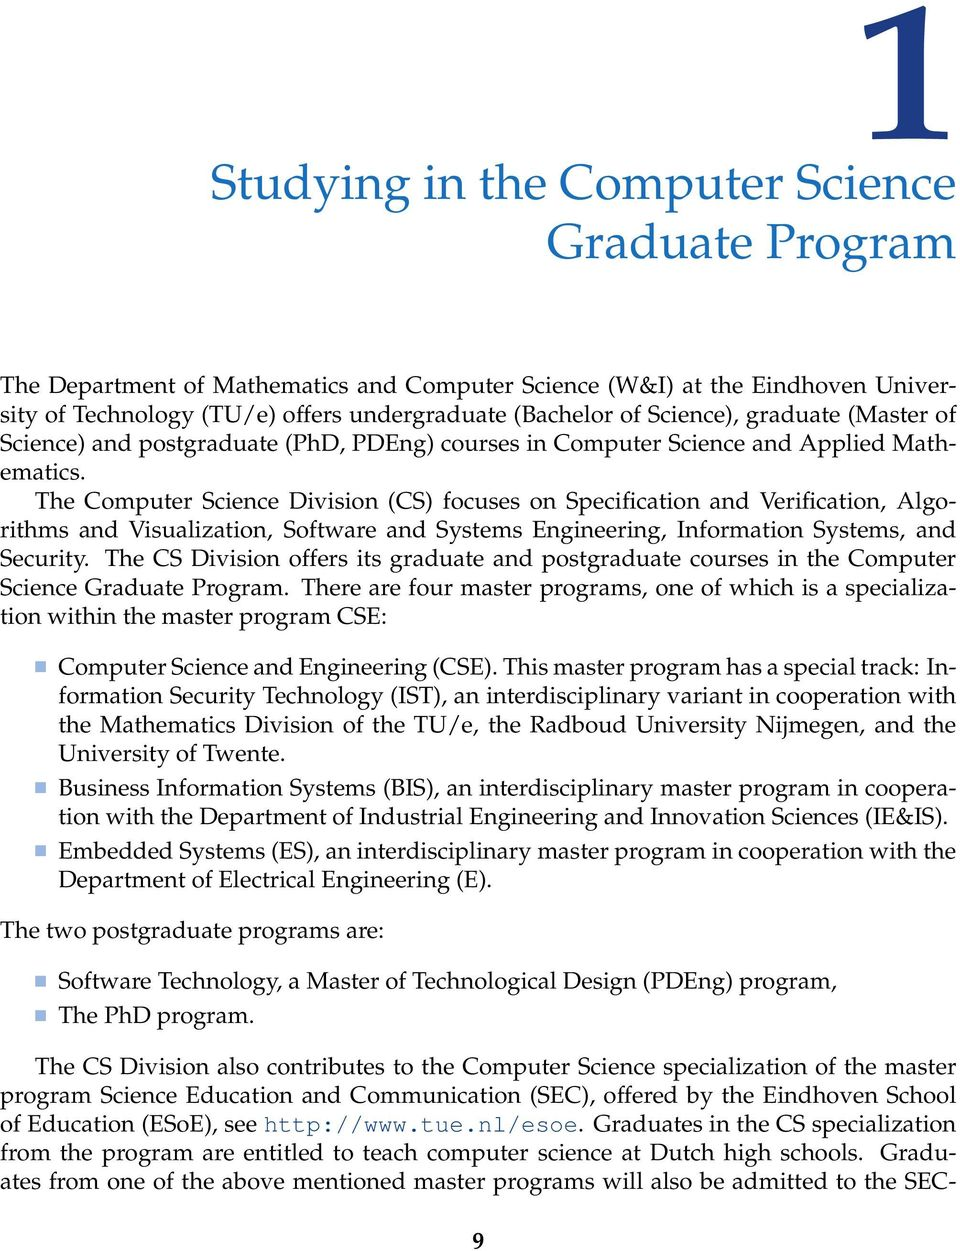 The Computer Science Division (CS) focuses on Specification and Verification, Algorithms and Visualization, Software and Systems Engineering, Information Systems, and Security.